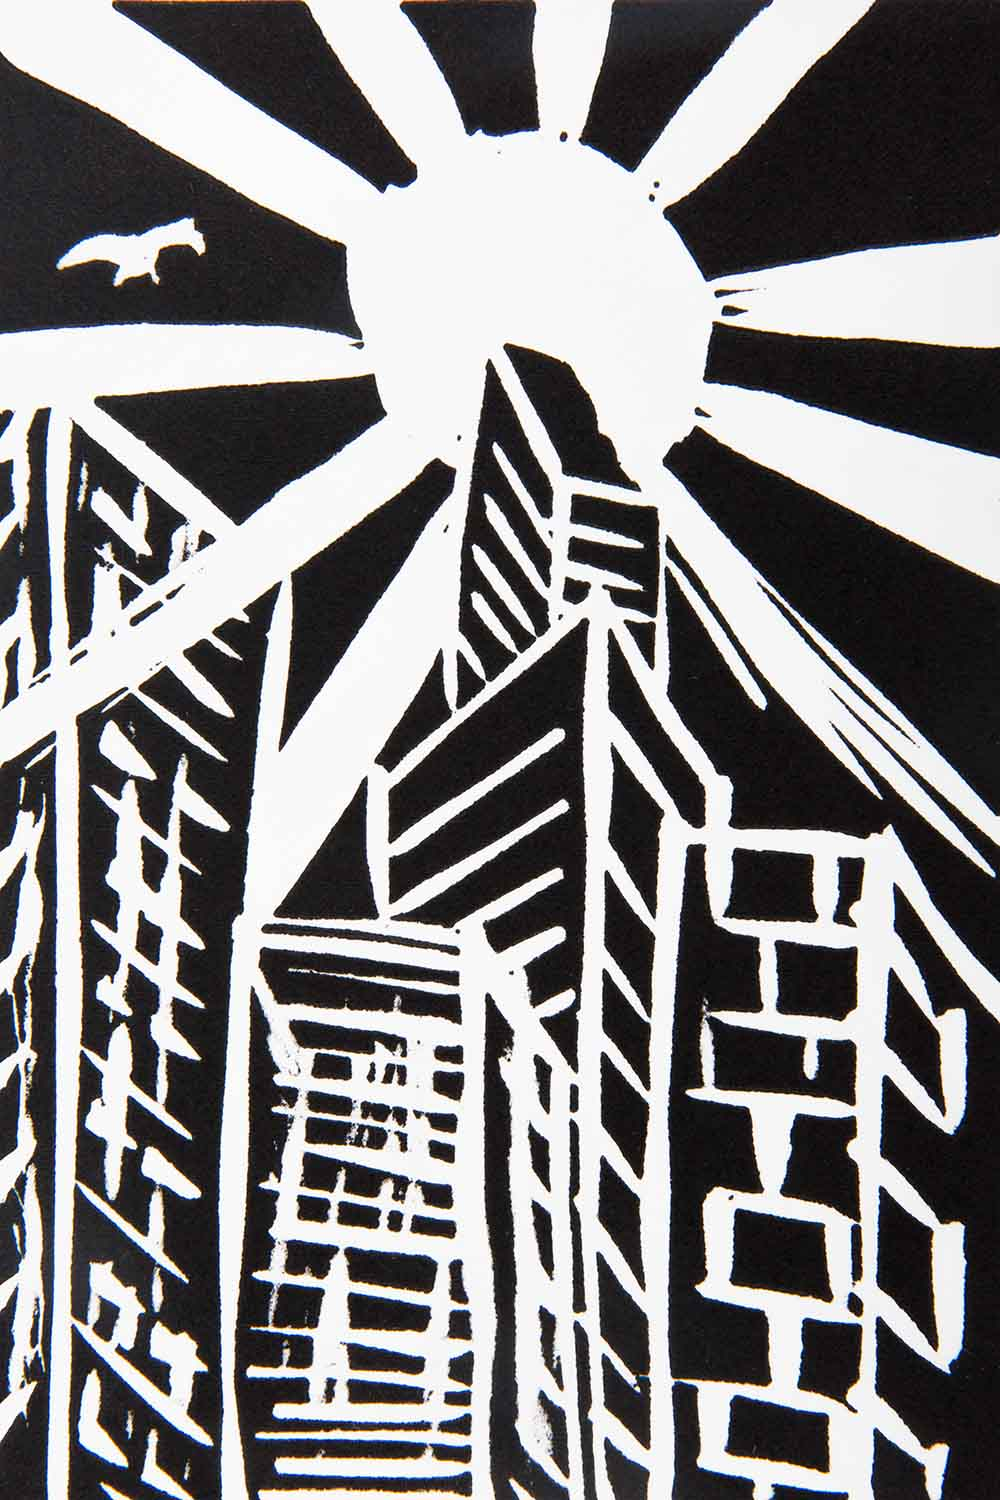 Rodney Mallee 'City Sunlight' for Open Canvas